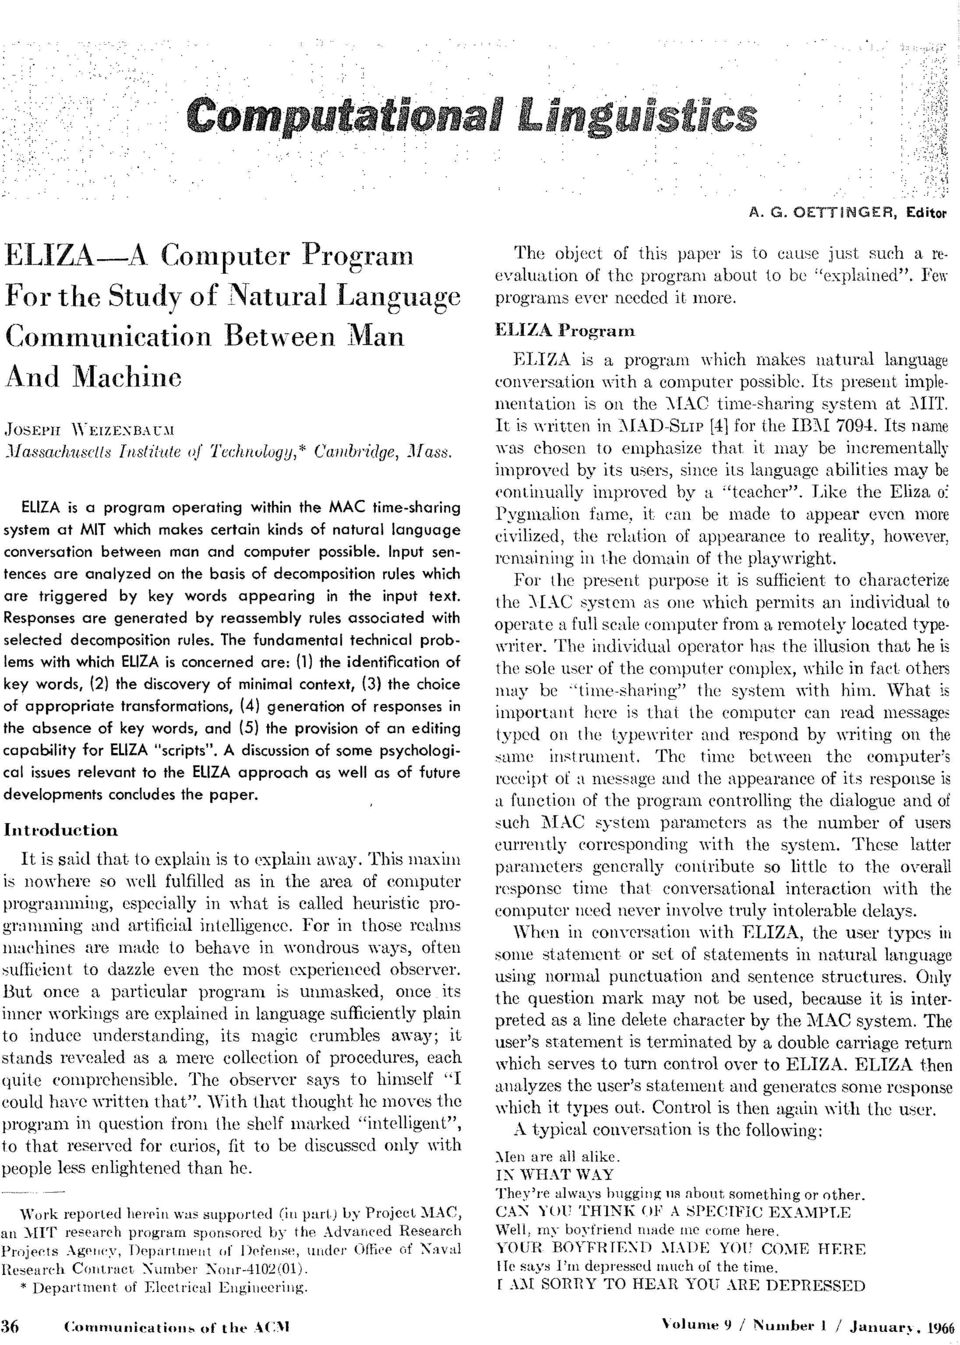 ELIZA is a program operating within the MAC time-sharing system at MIT which makes certain kinds of natural language conversation between man and computer possible.